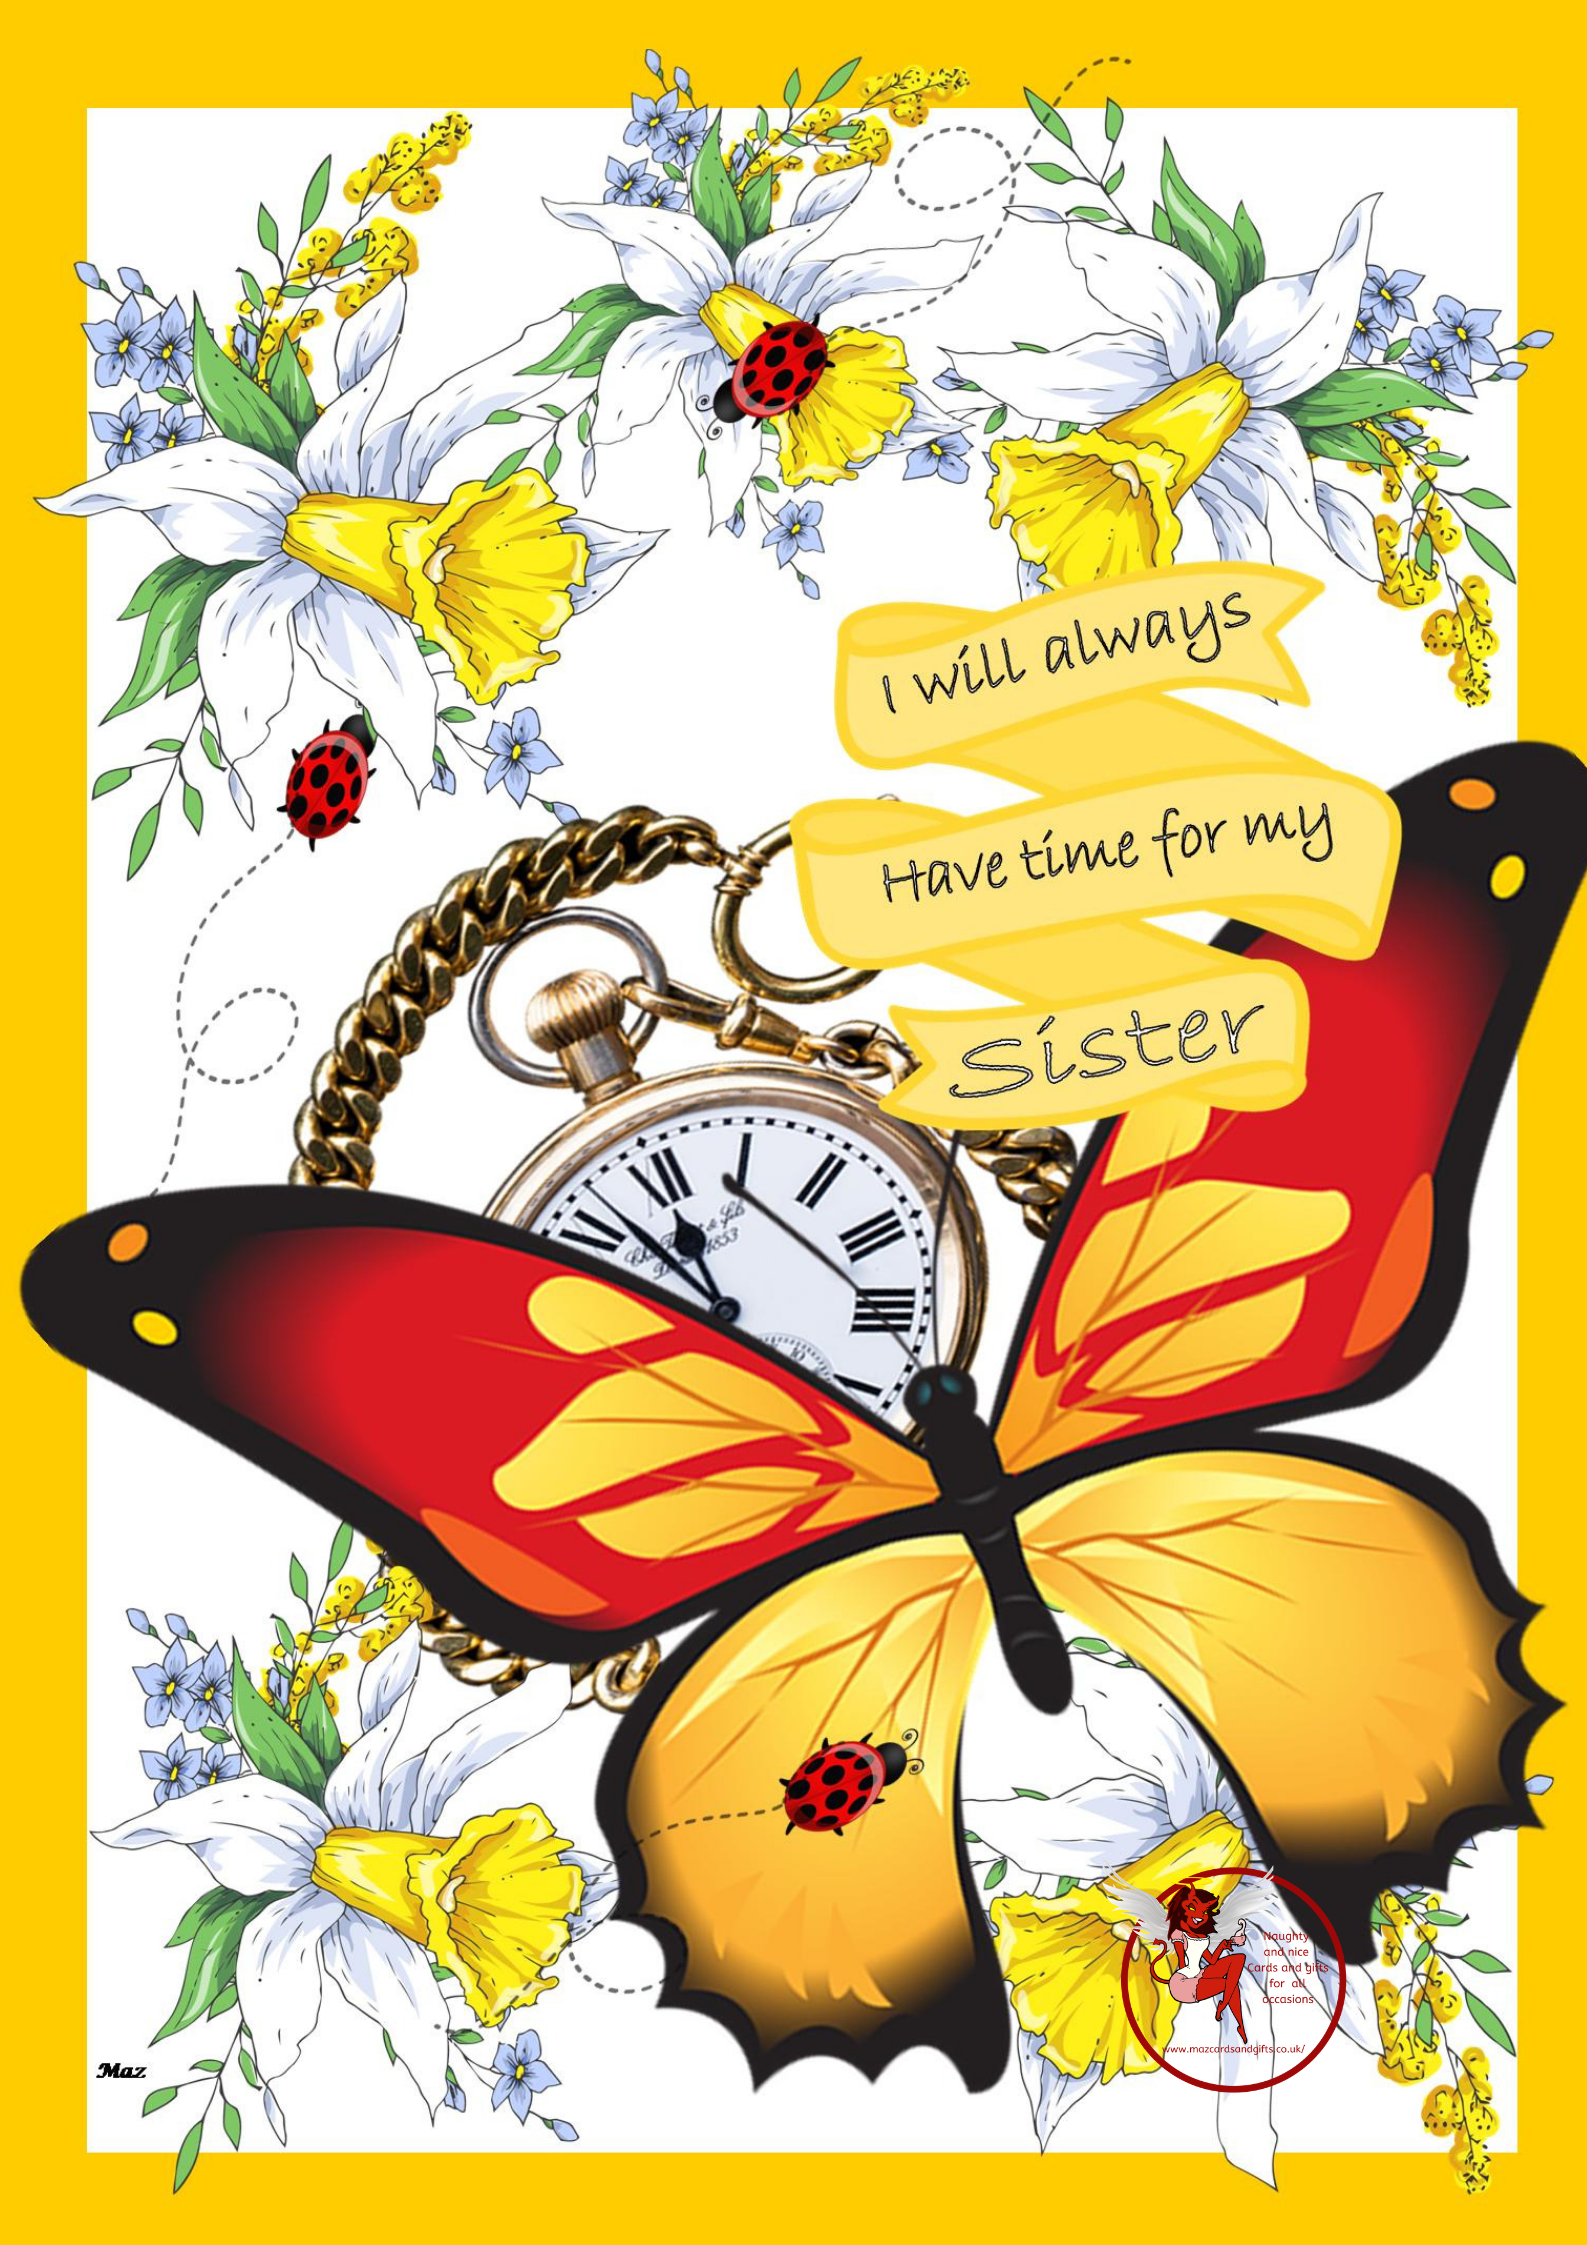 General Card - Always have time for my sister - Order No 029